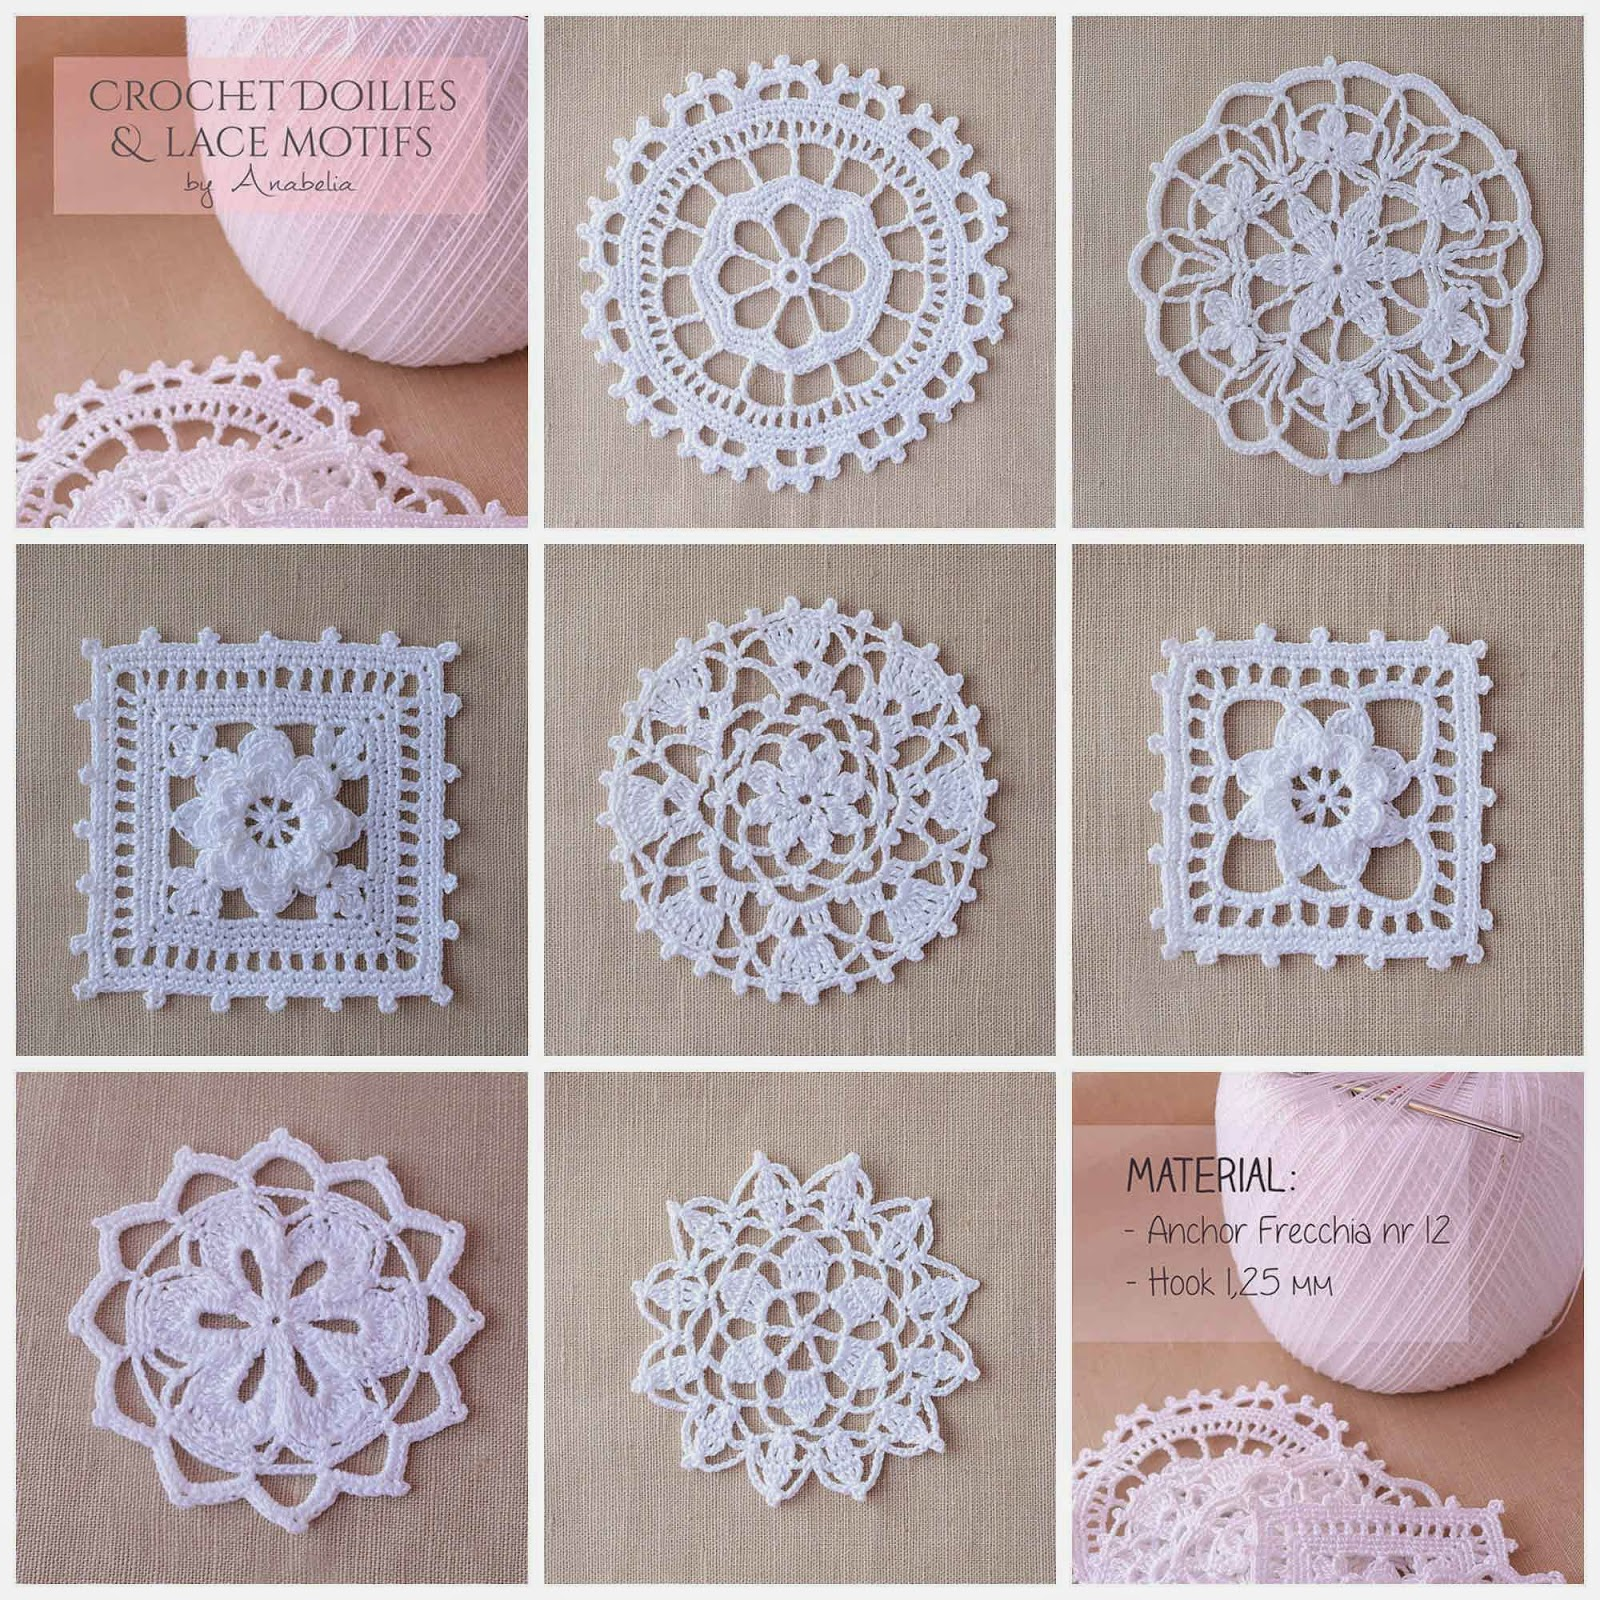 Crochet Patterns For Motifs : Anabelia craft design: Crochet doilies and lace motifs